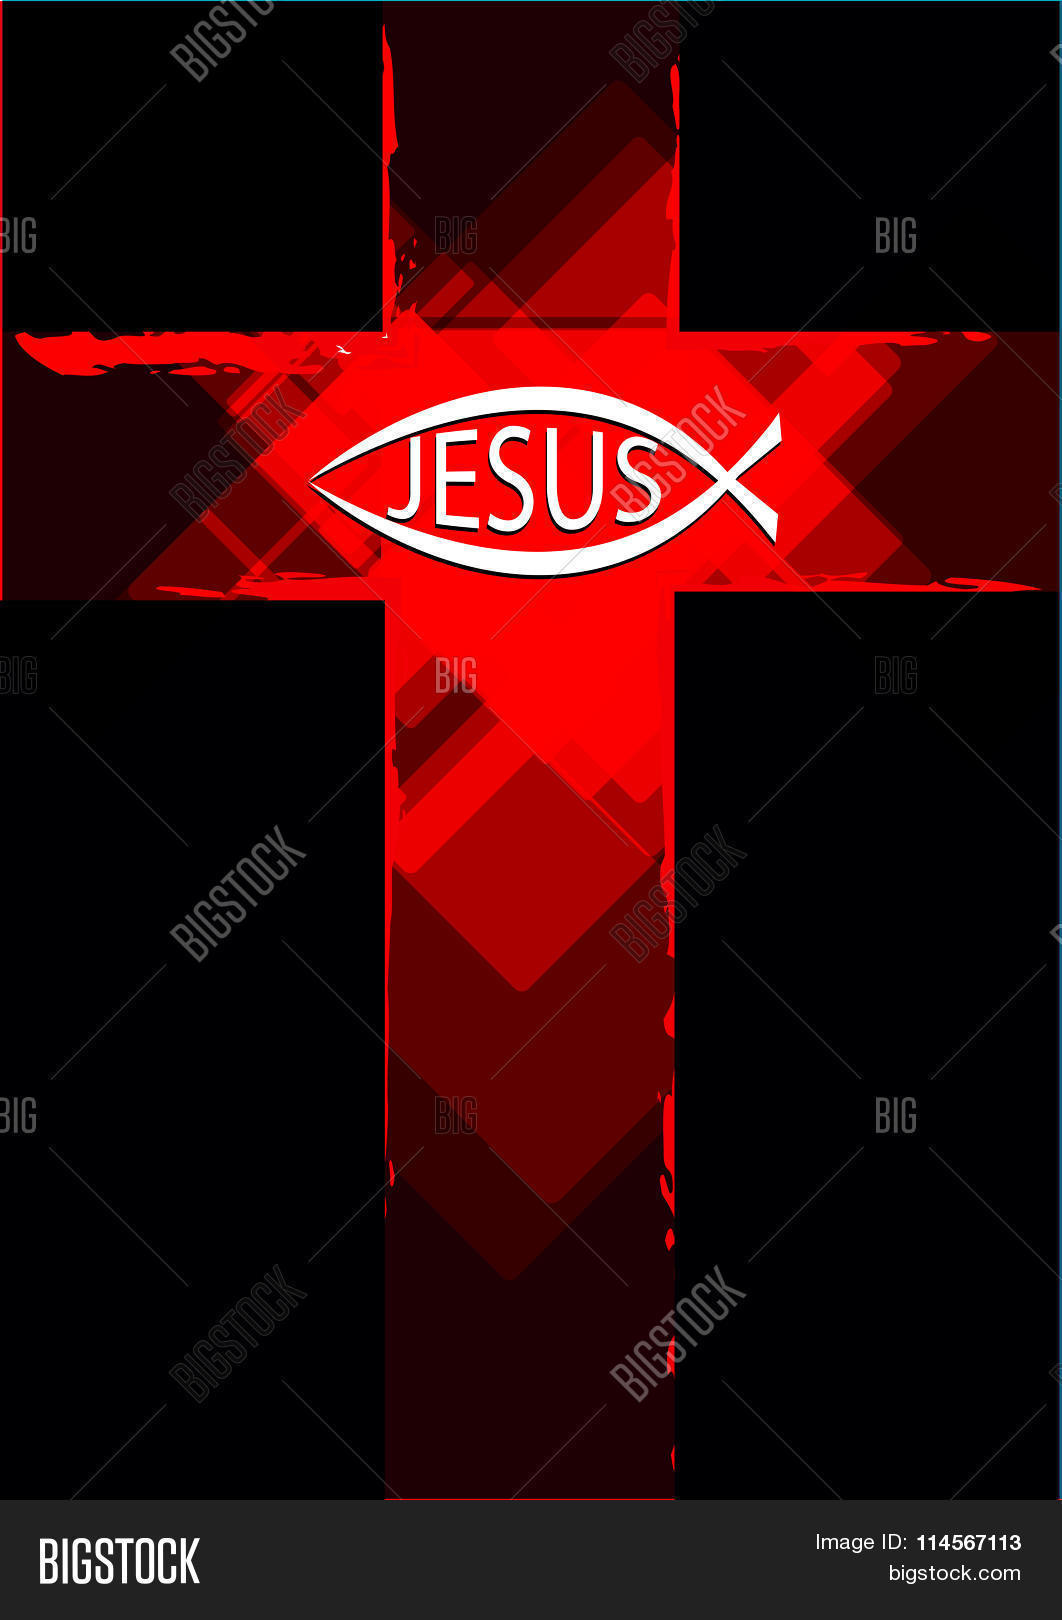 Grunge red cross ichthys fish vector photo bigstock grunge red cross with a ichthys fish symbol and jesus text buycottarizona Gallery